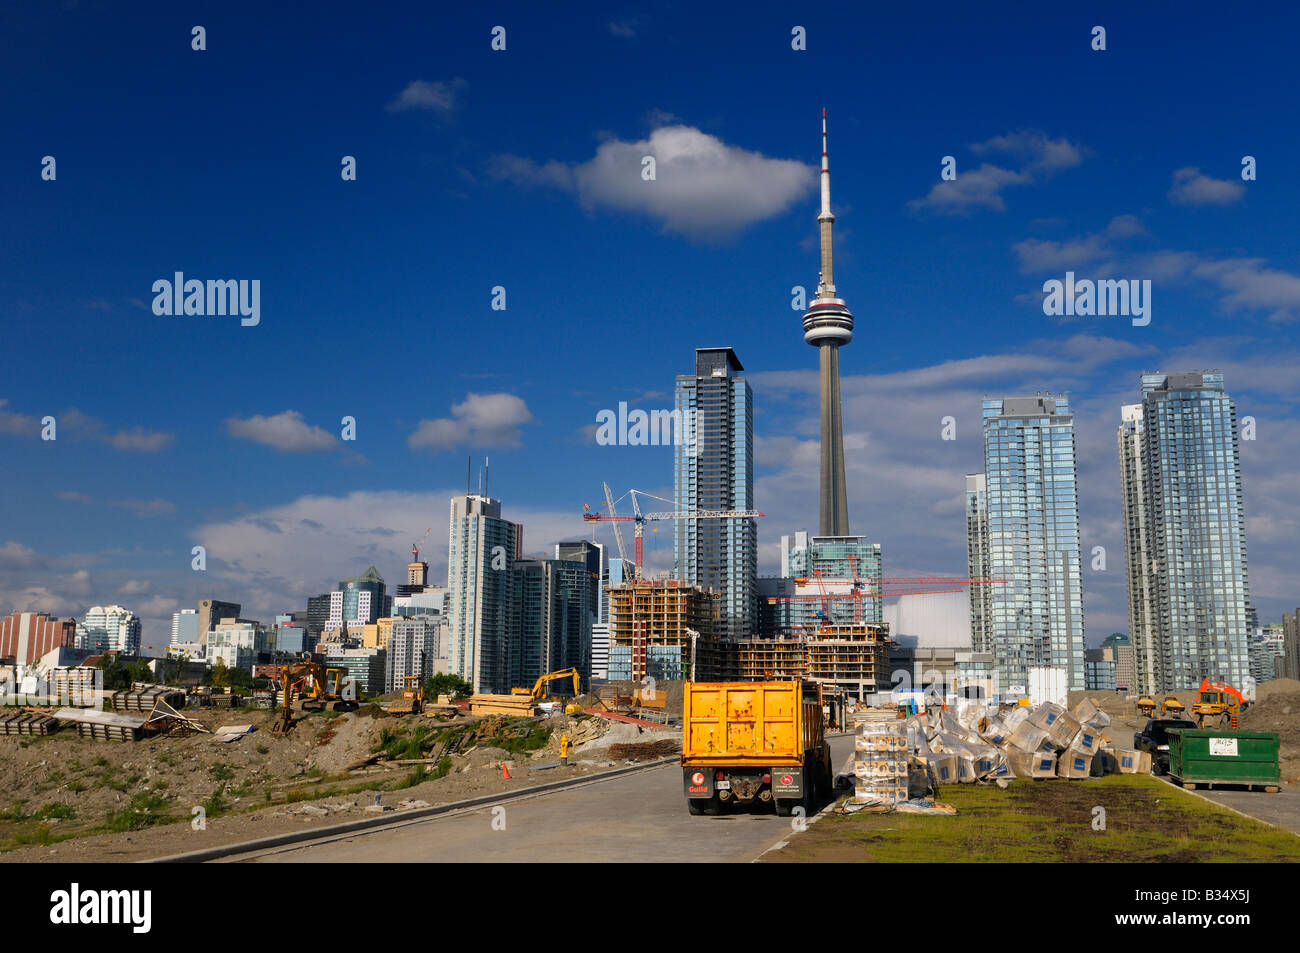 Construction dumpster truck and new condo development beside the city core of Toronto Canada with CN Tower - Stock Image